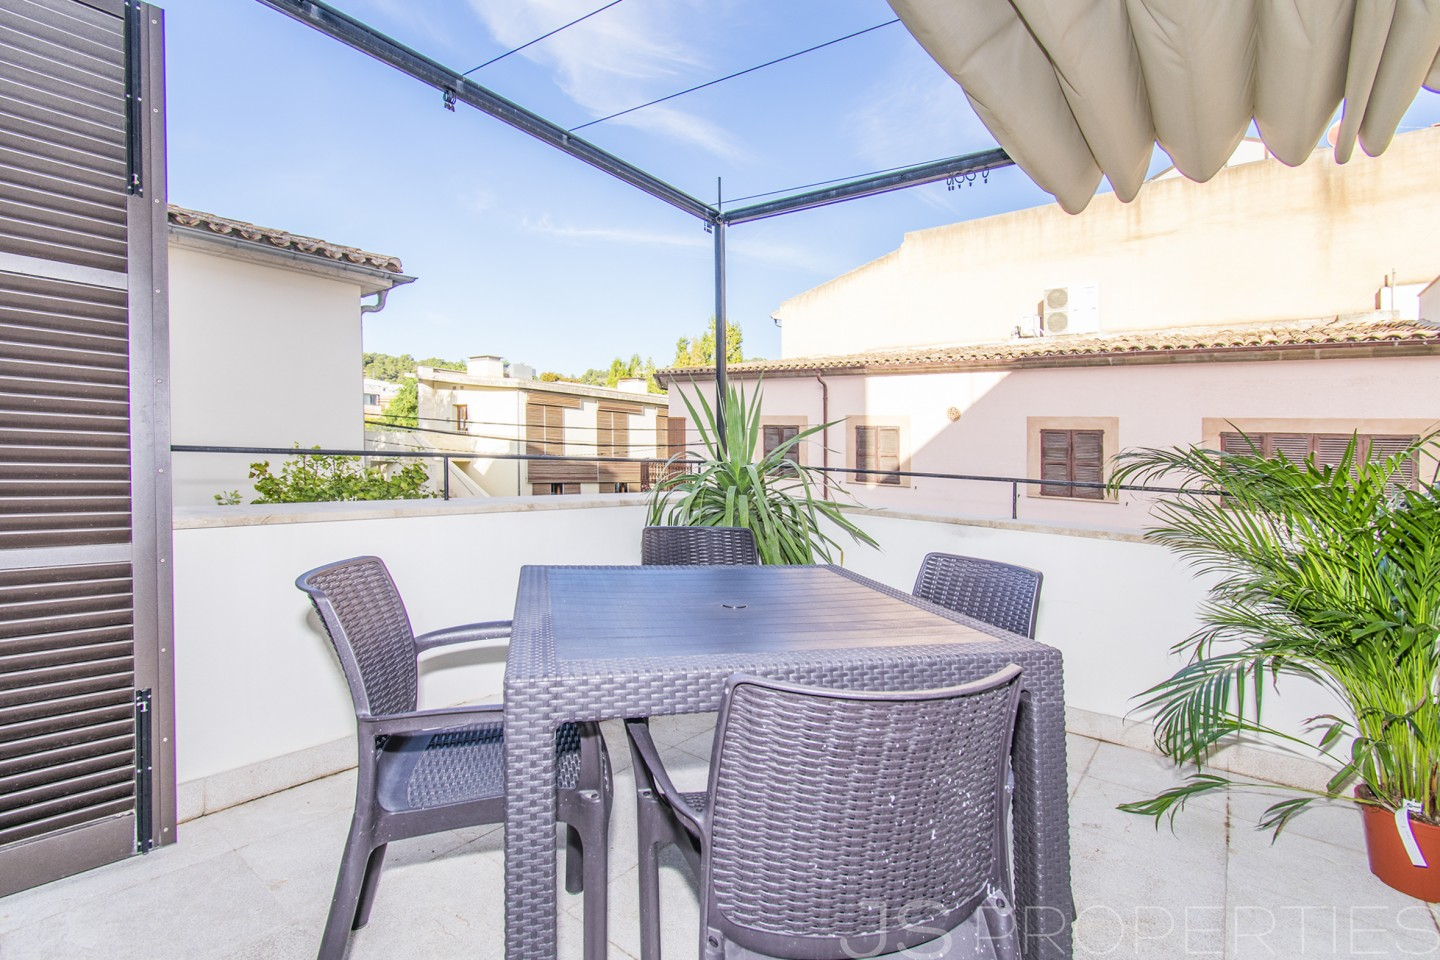 MODERN AND SPACIOUS DUPLEX IN THE HEART OF POLLENSA OLD TOWN